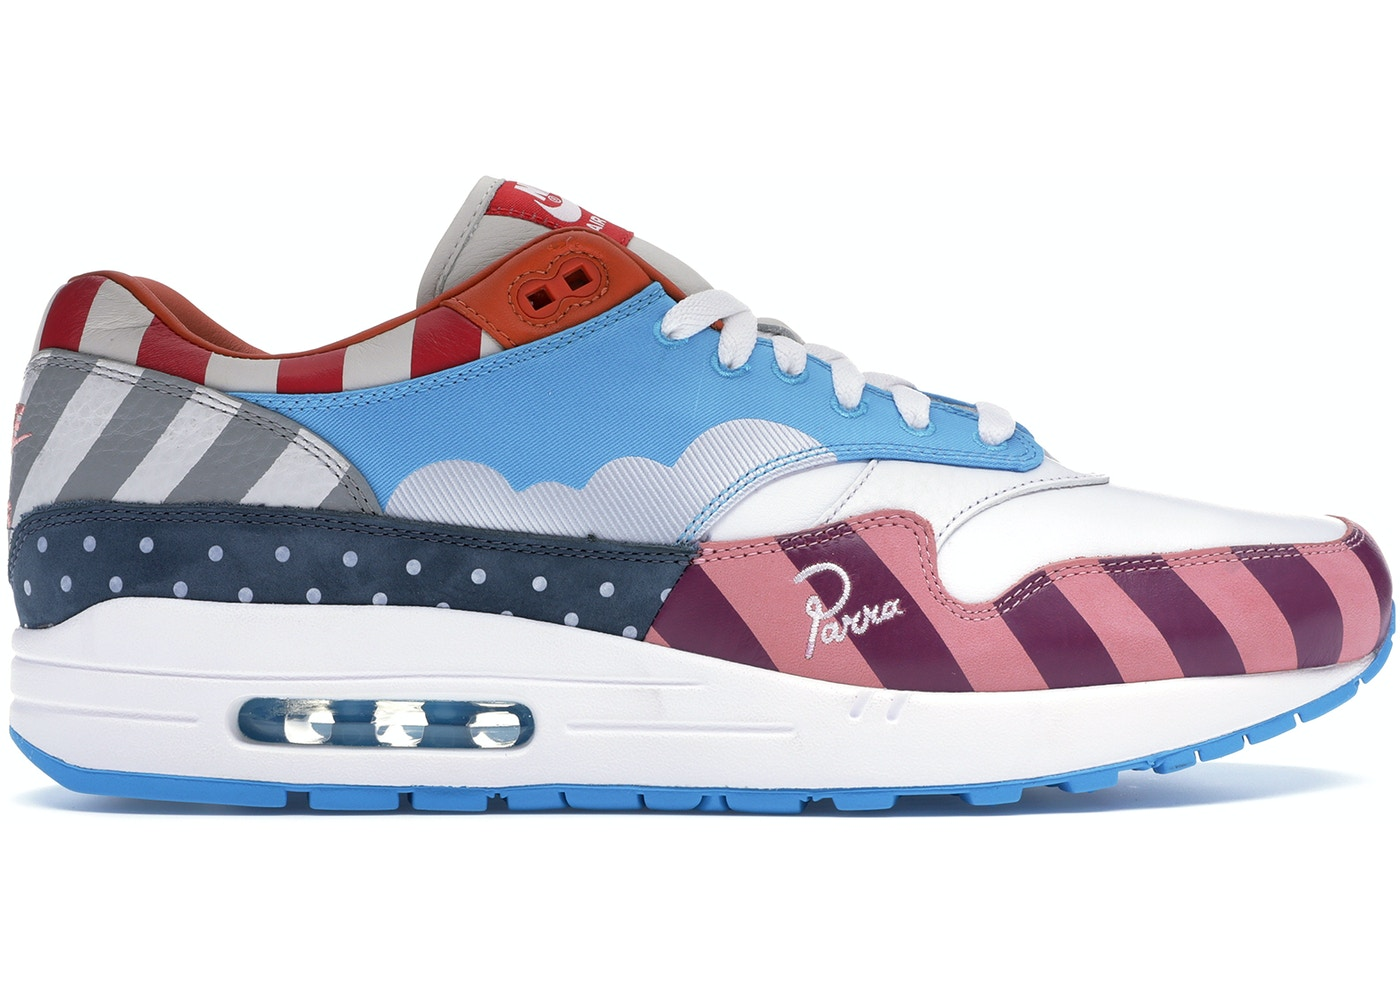 a5169524 Air Max 1 Parra 2018 (Friends & Family) - Sneakers